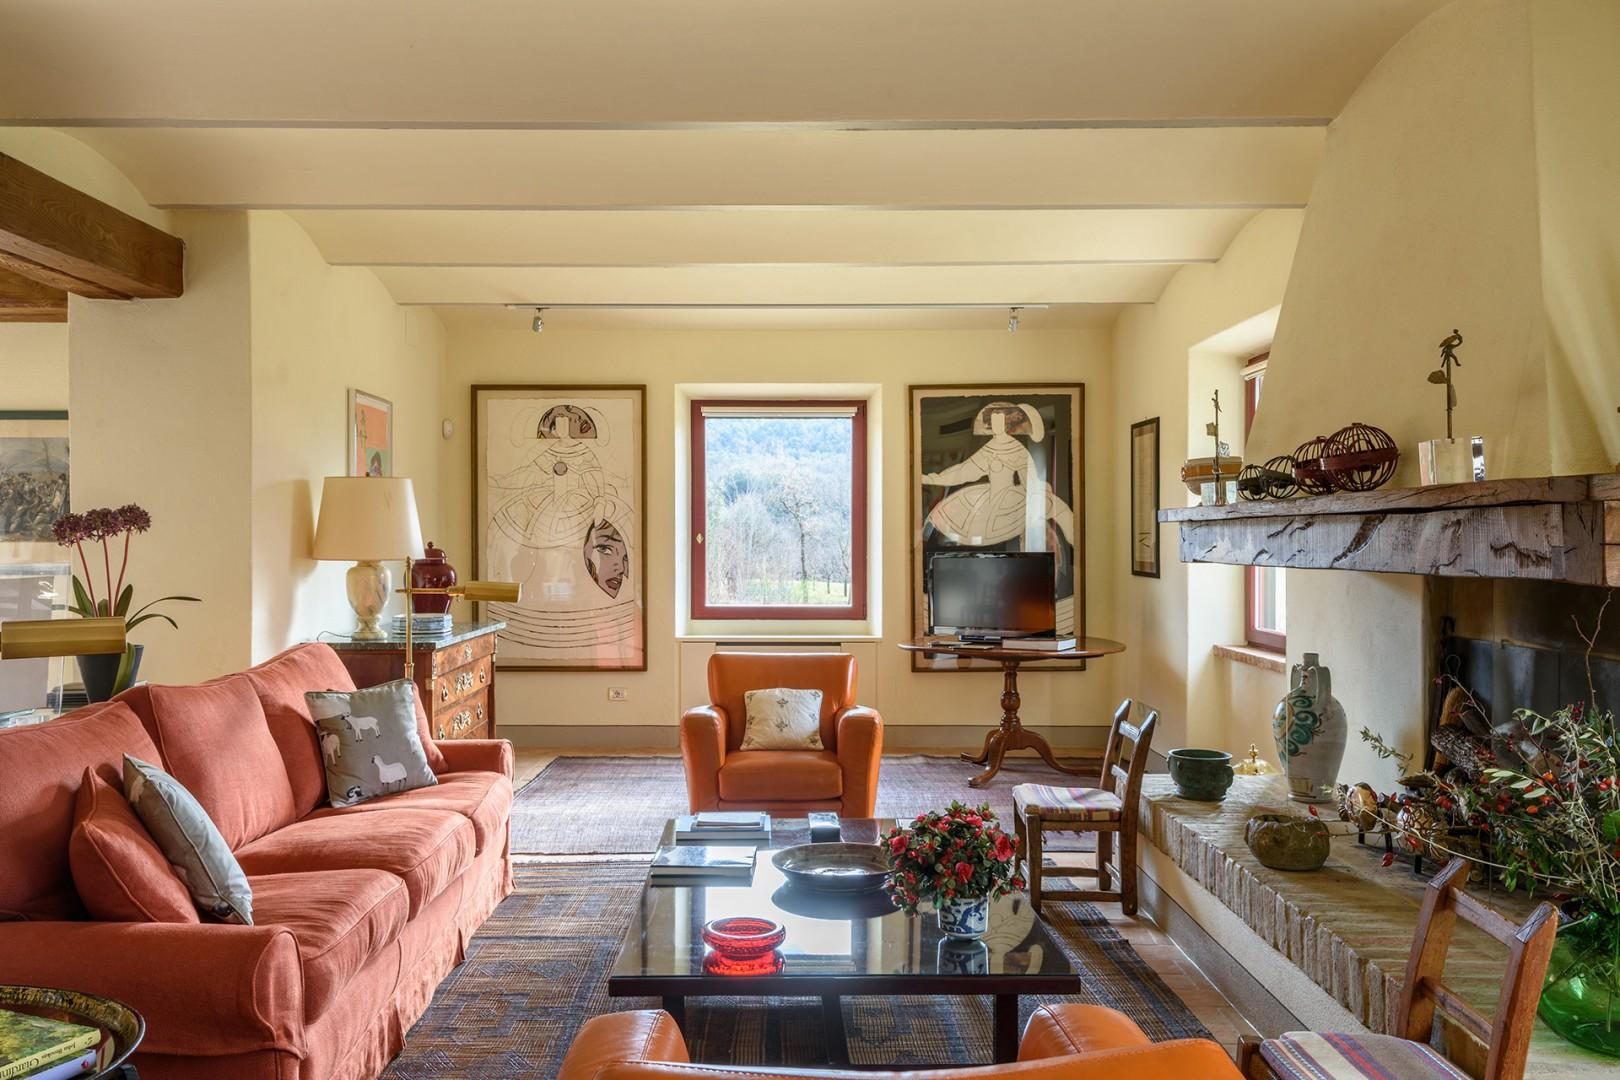 Elegant living room has marvelous views to the outdoors and a bevy of comfortable seating.